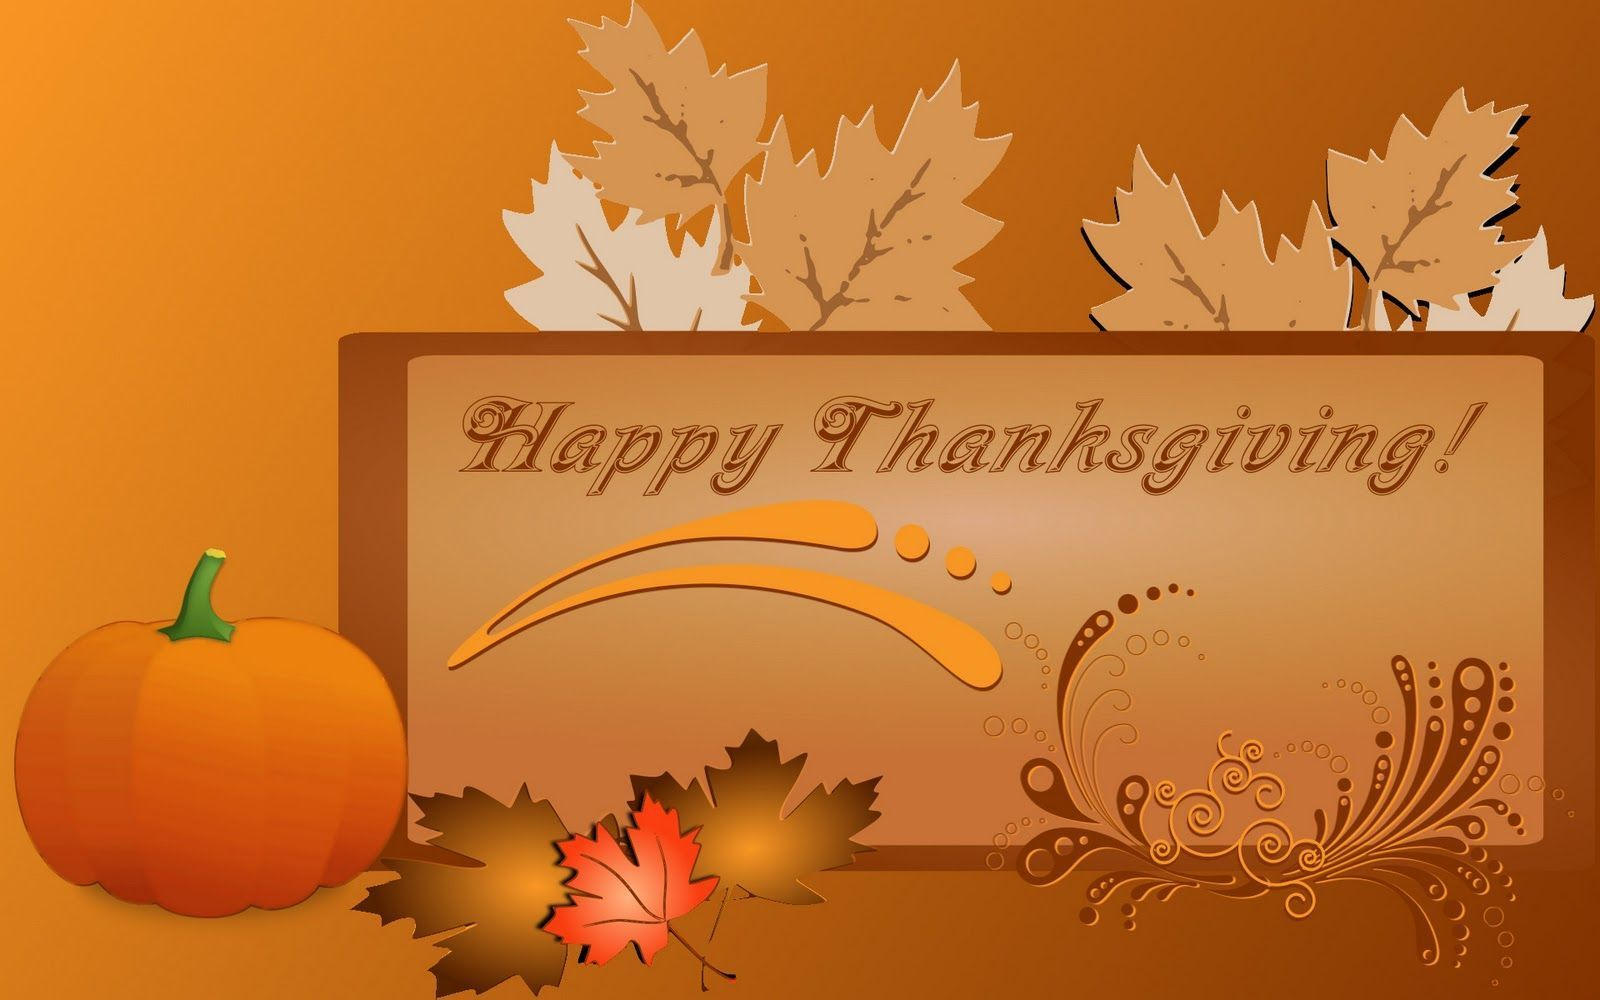 Free Hd Thanksgiving Wallpaper Happy thanksgiving images